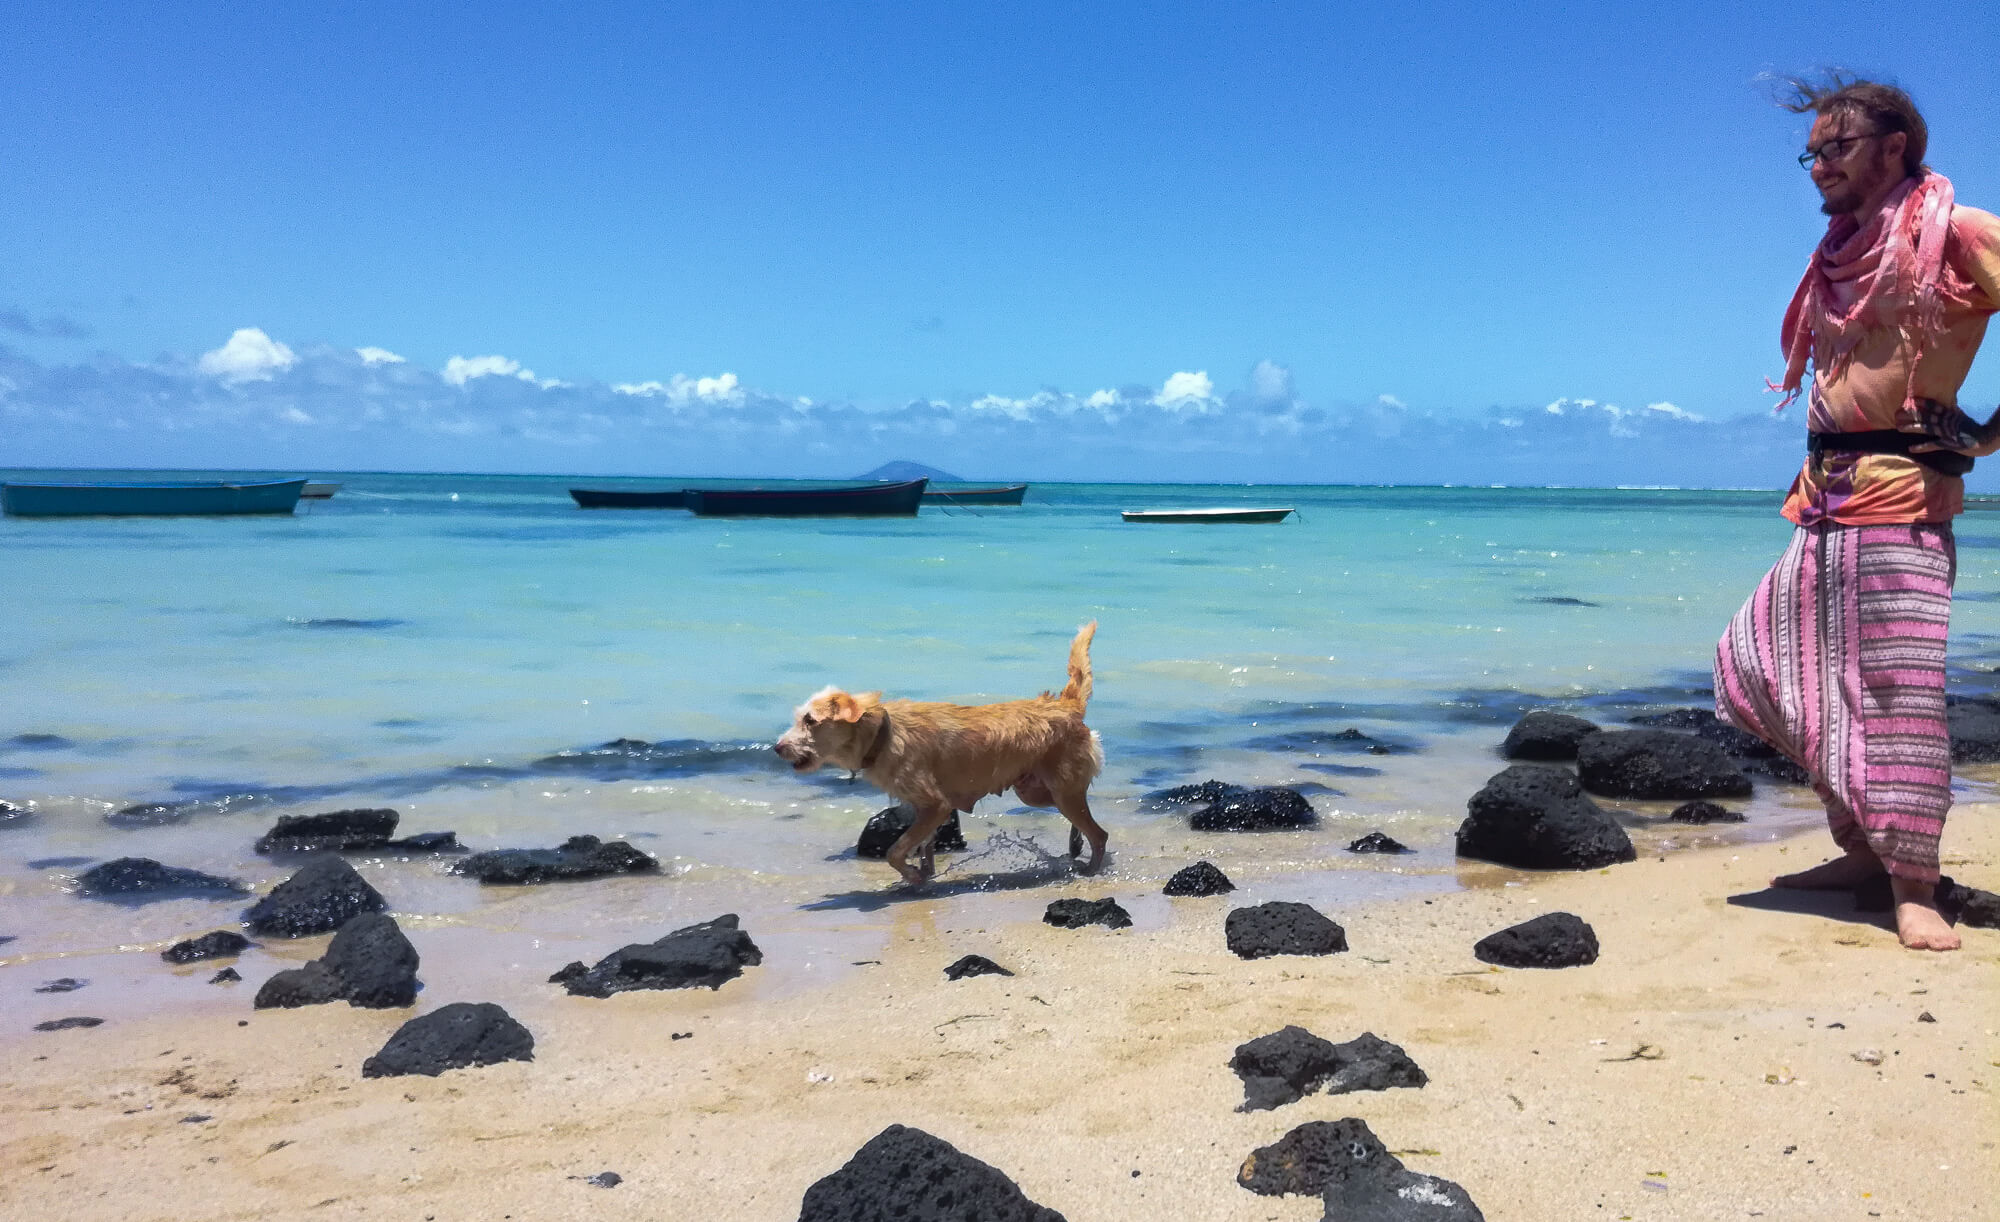 A man and a dog on a beautiful public beach in Mauritius